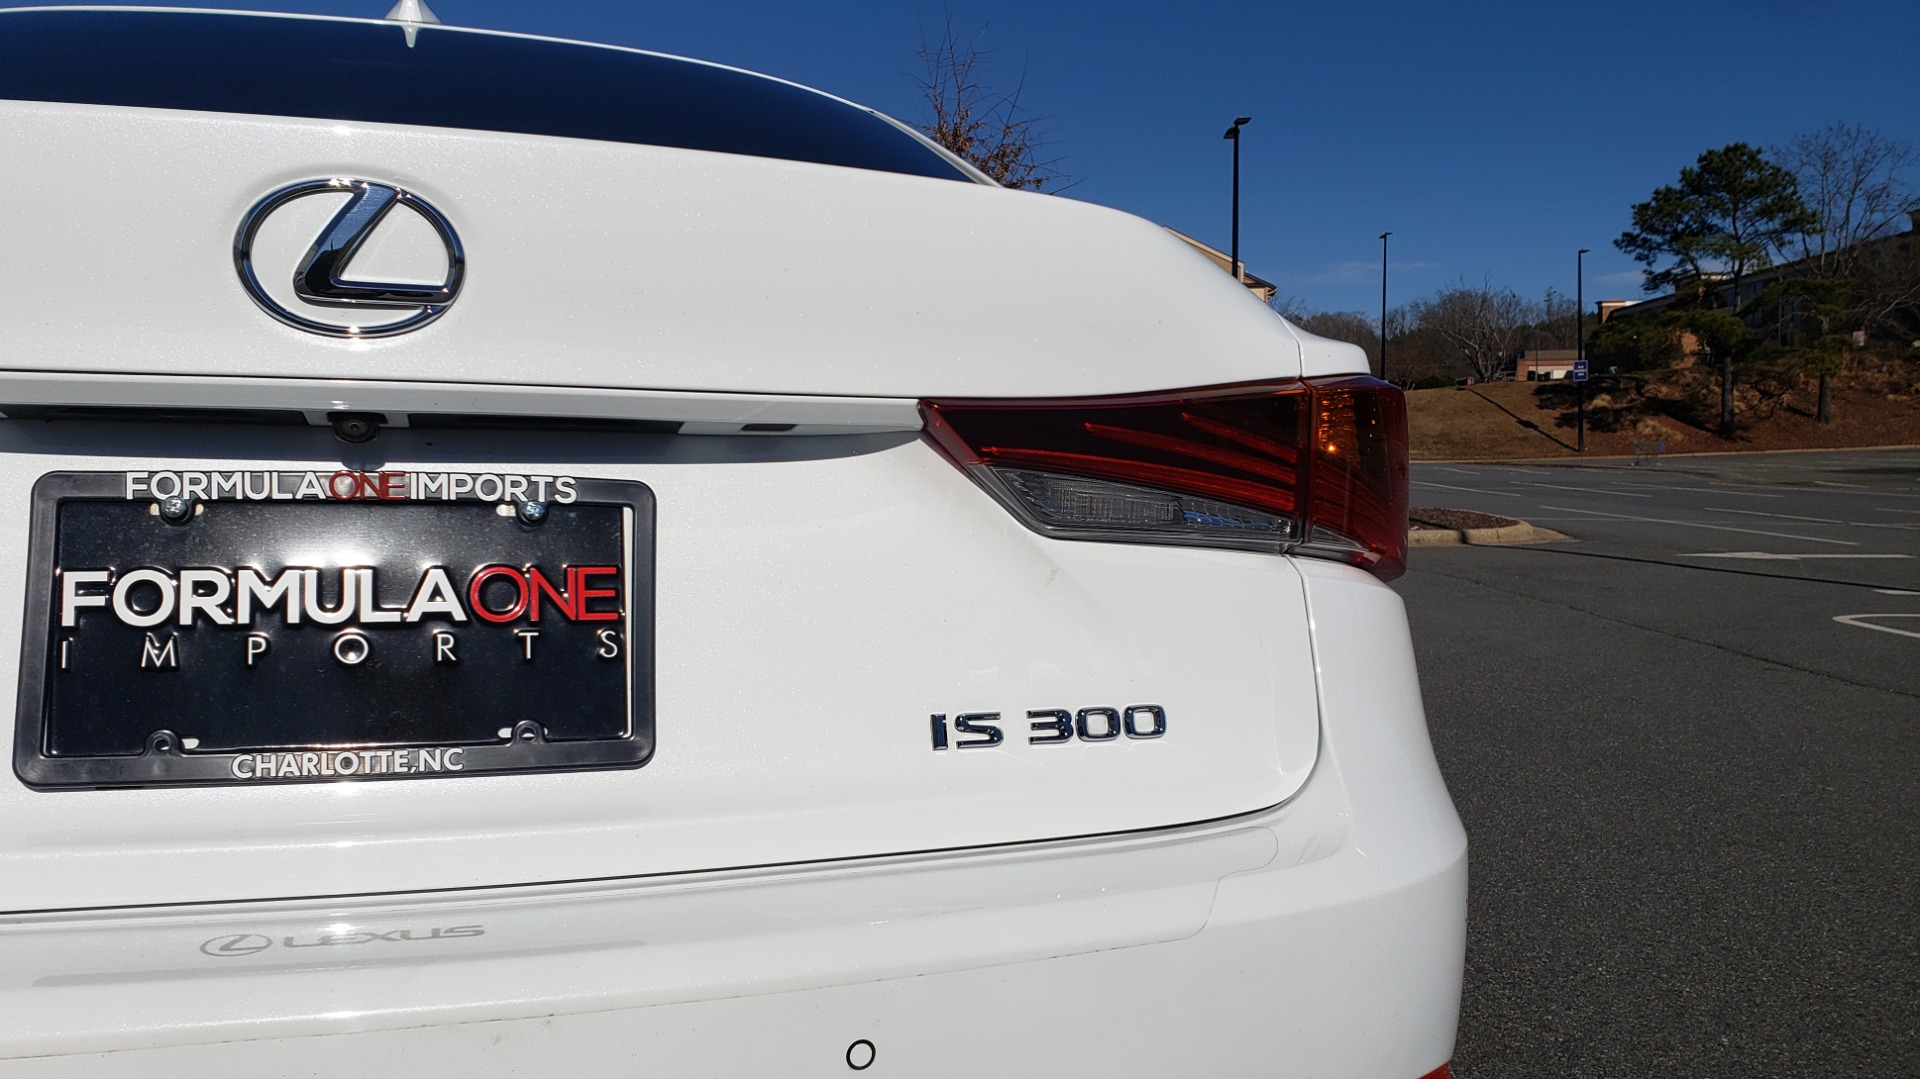 Used 2018 Lexus IS 300 F-SPORT / BSM / SUNROOF / REARVIEW / 18IN WHEELS for sale Sold at Formula Imports in Charlotte NC 28227 21